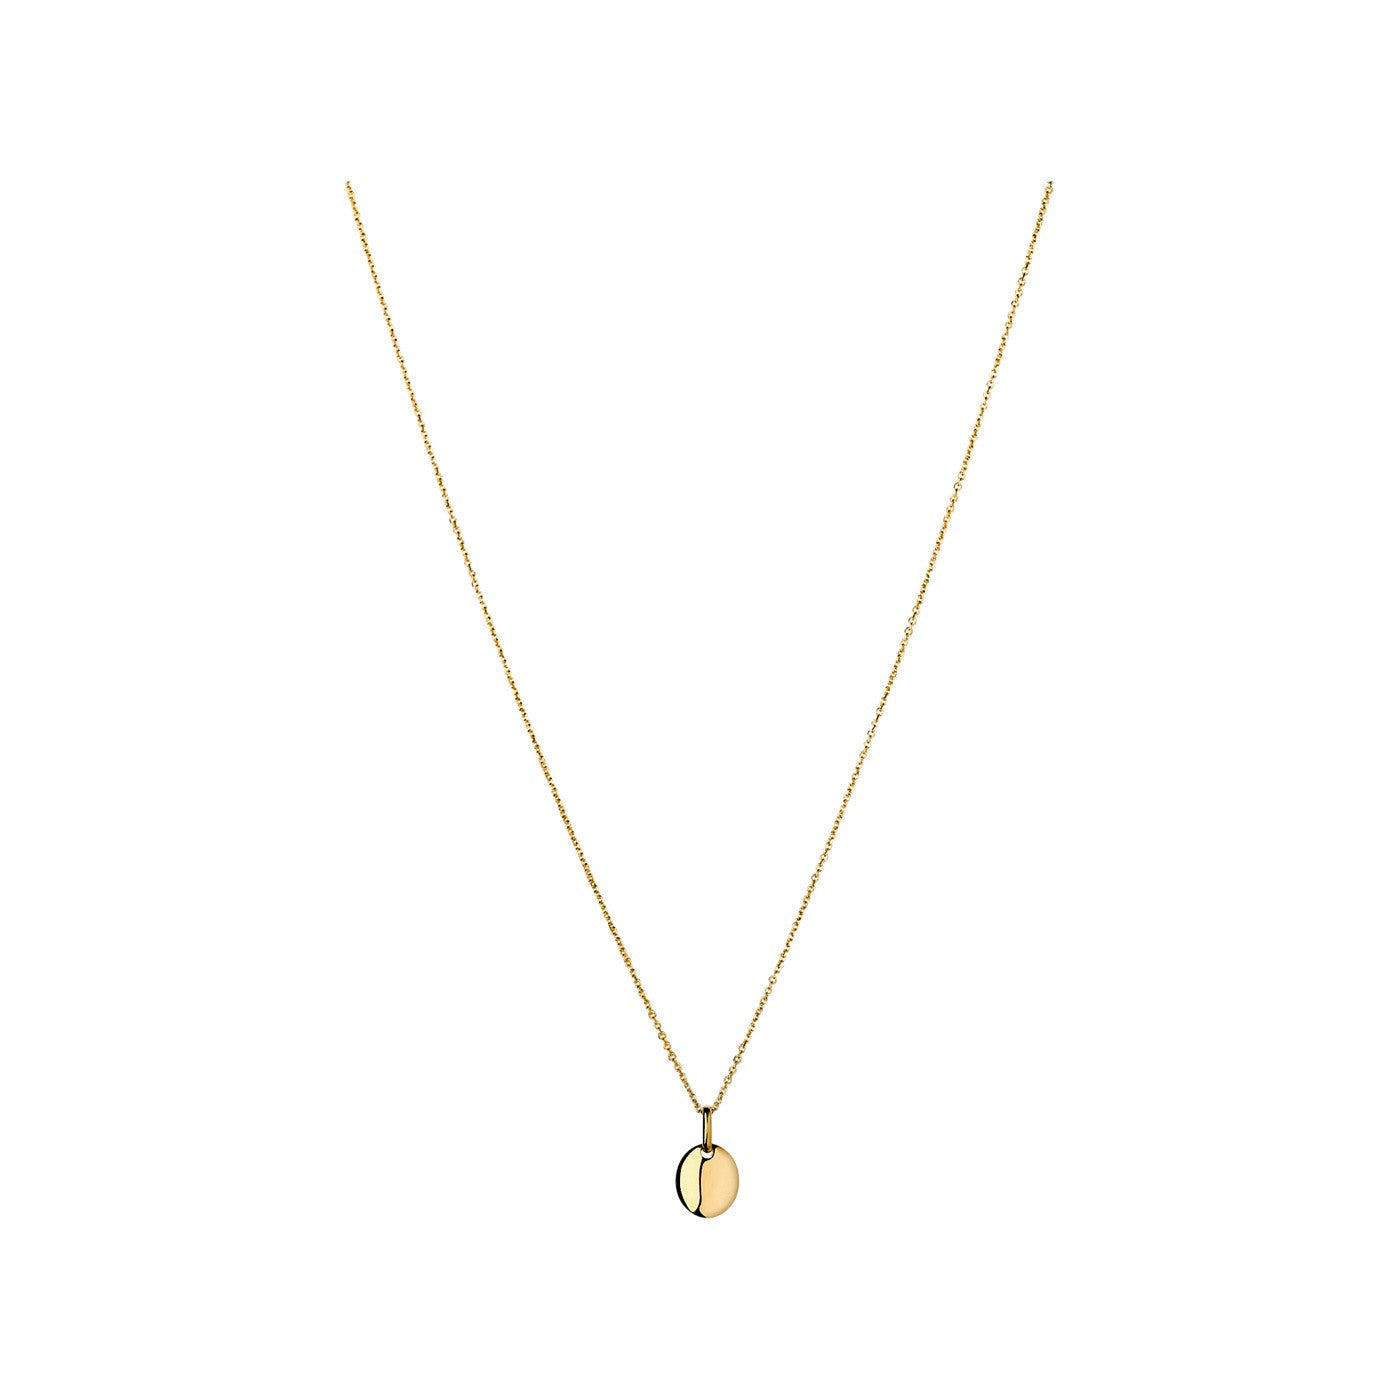 Links of London Grace 18k Yellow Gold Vermeil Necklace - 5020.2849